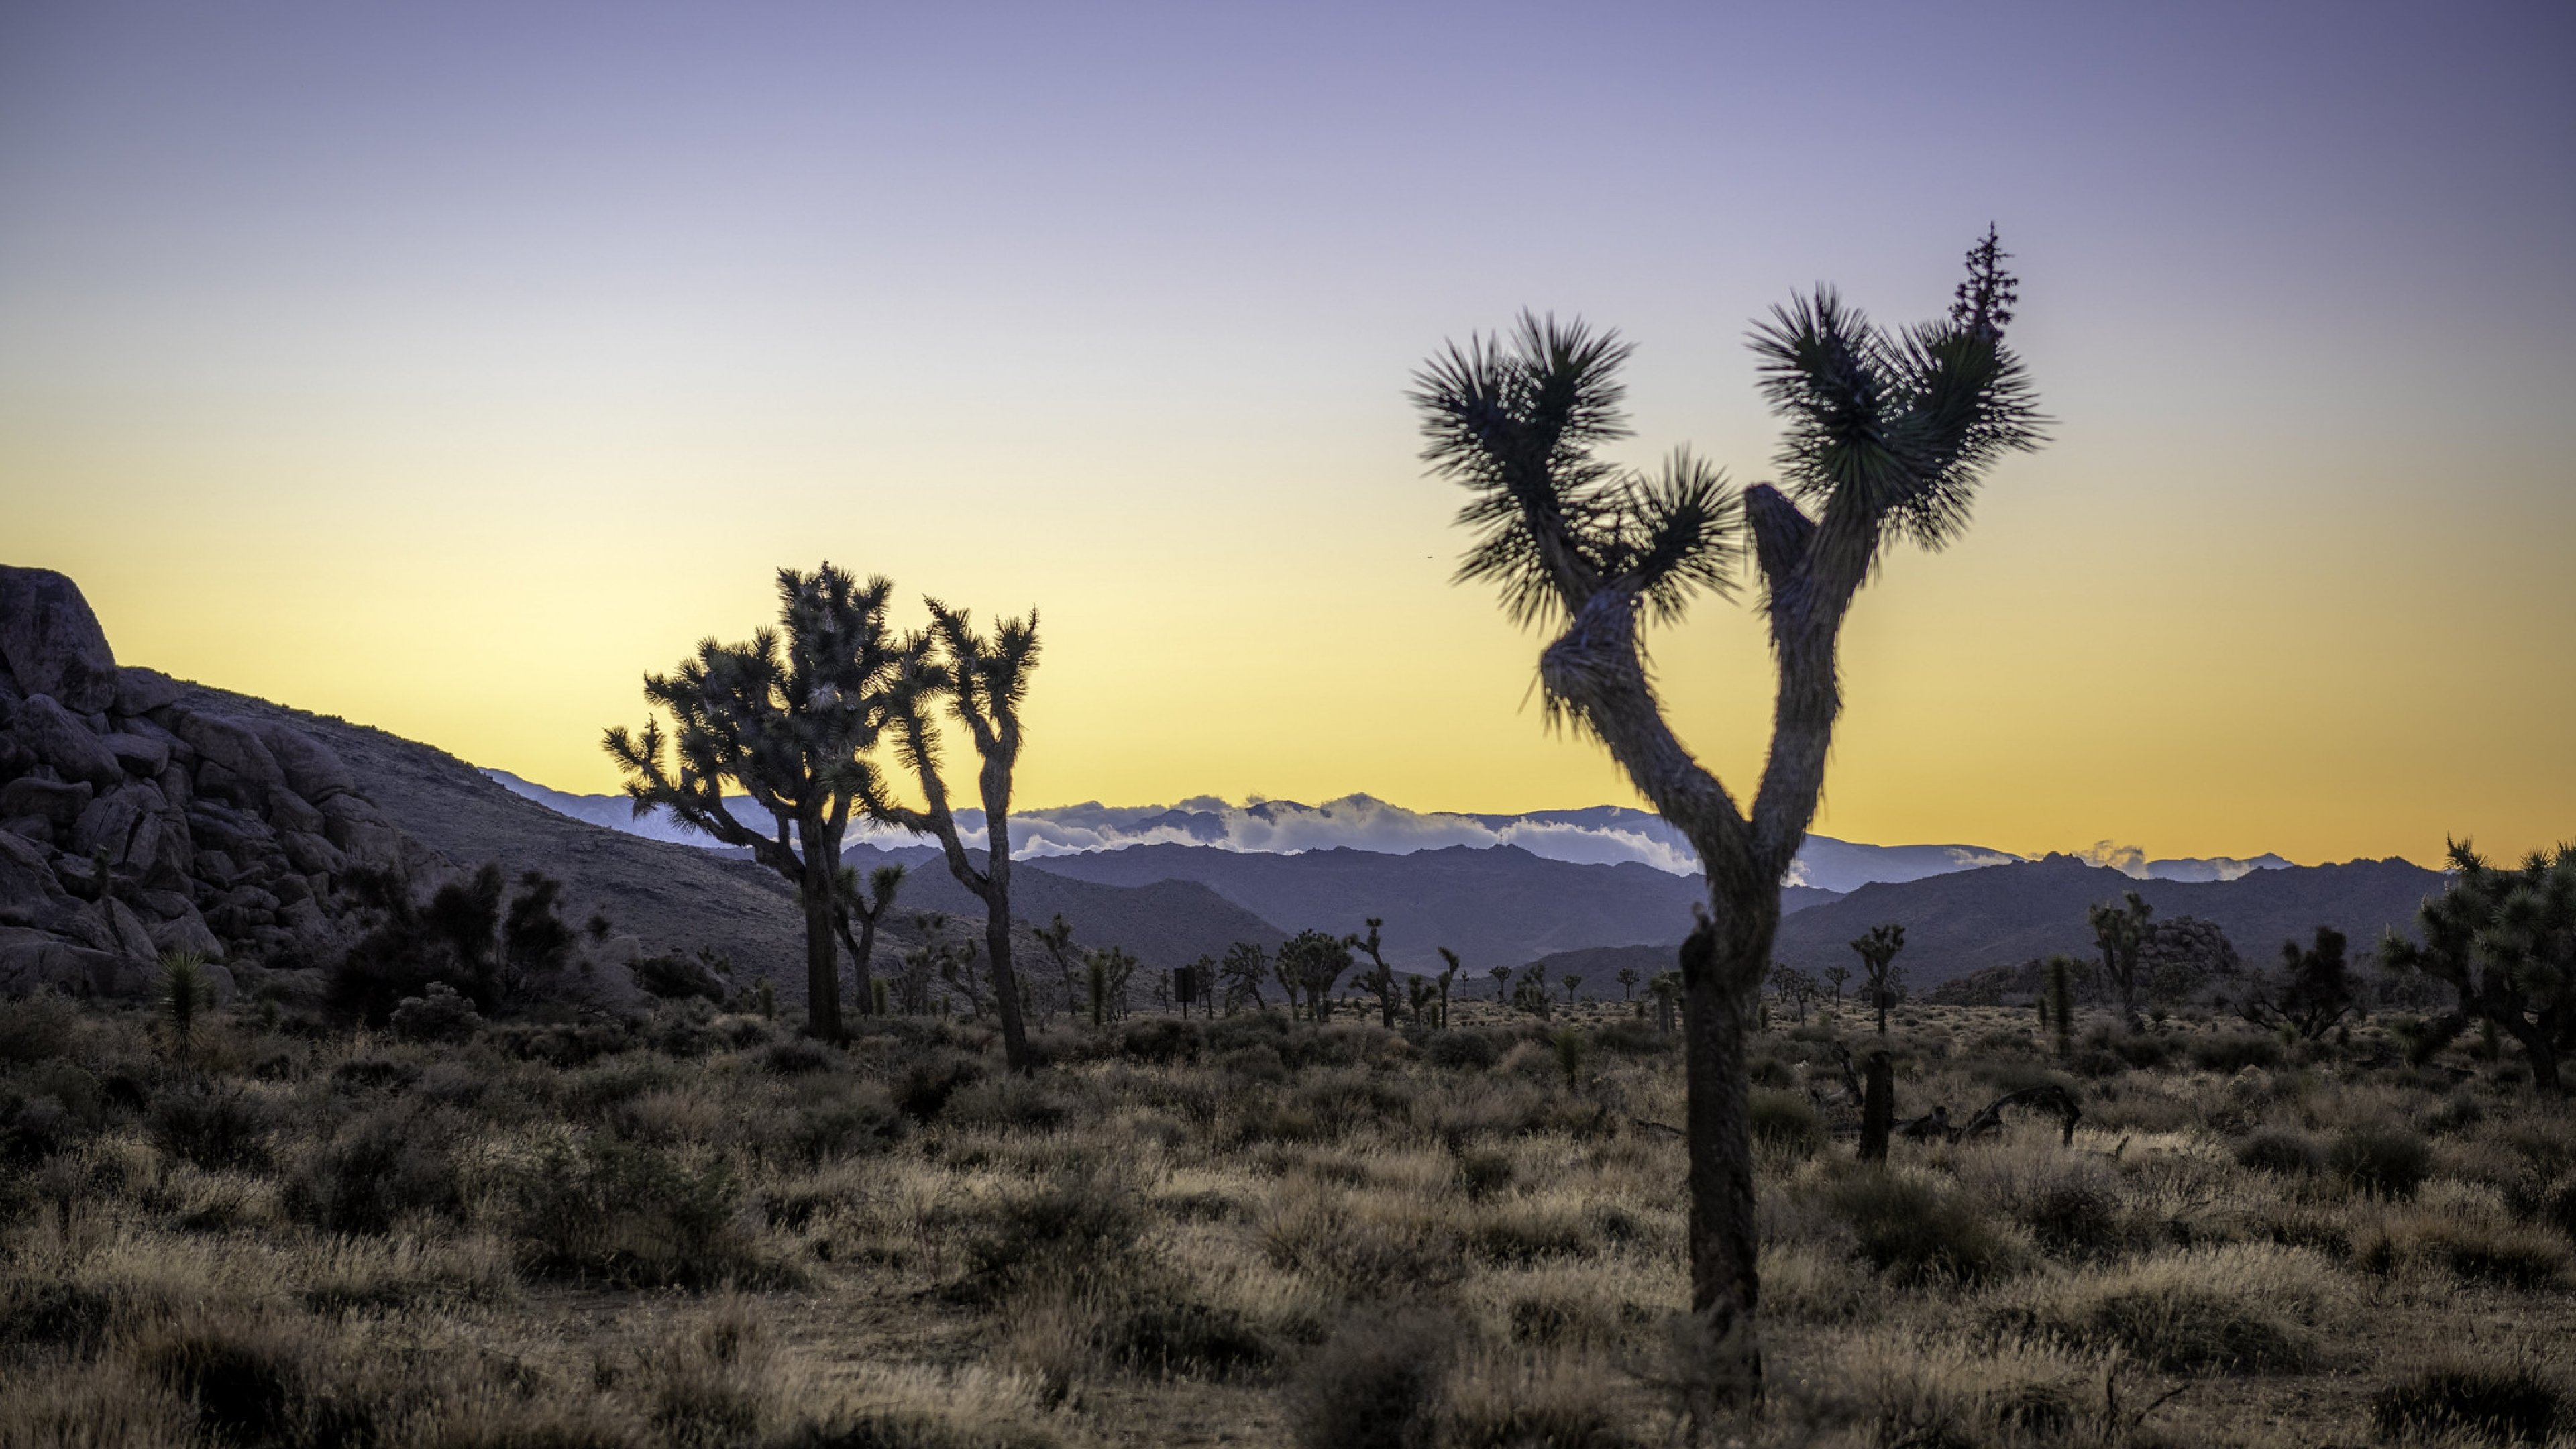 Clouds top distant mountains over a field of Joshua trees at sunset